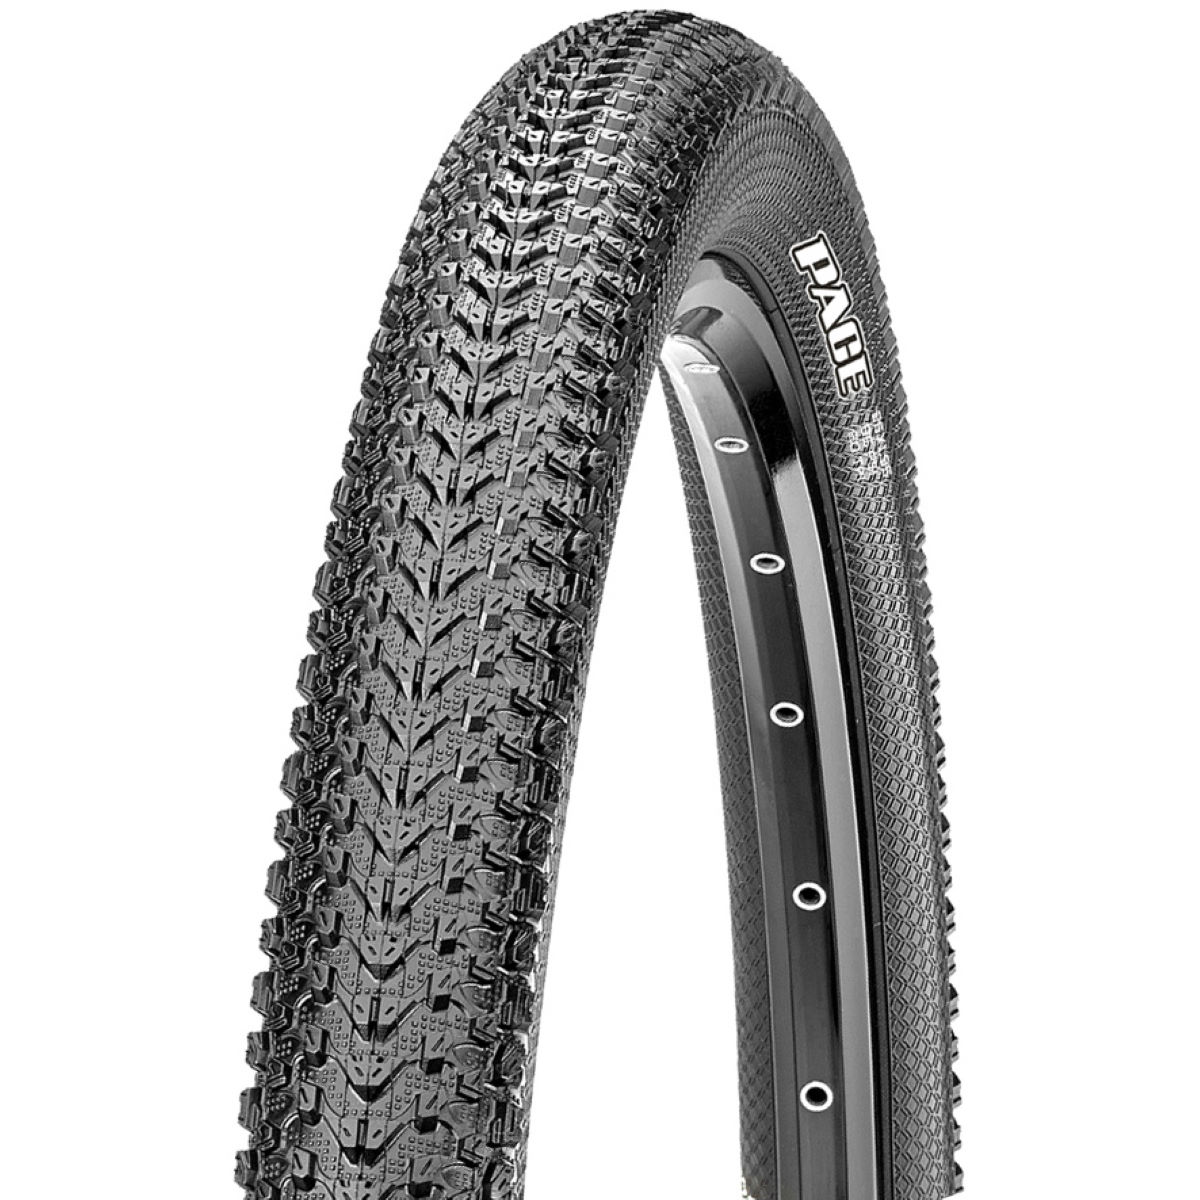 Maxxis Maxxis Pace MTB Tyre - EXO - TR   Tyres